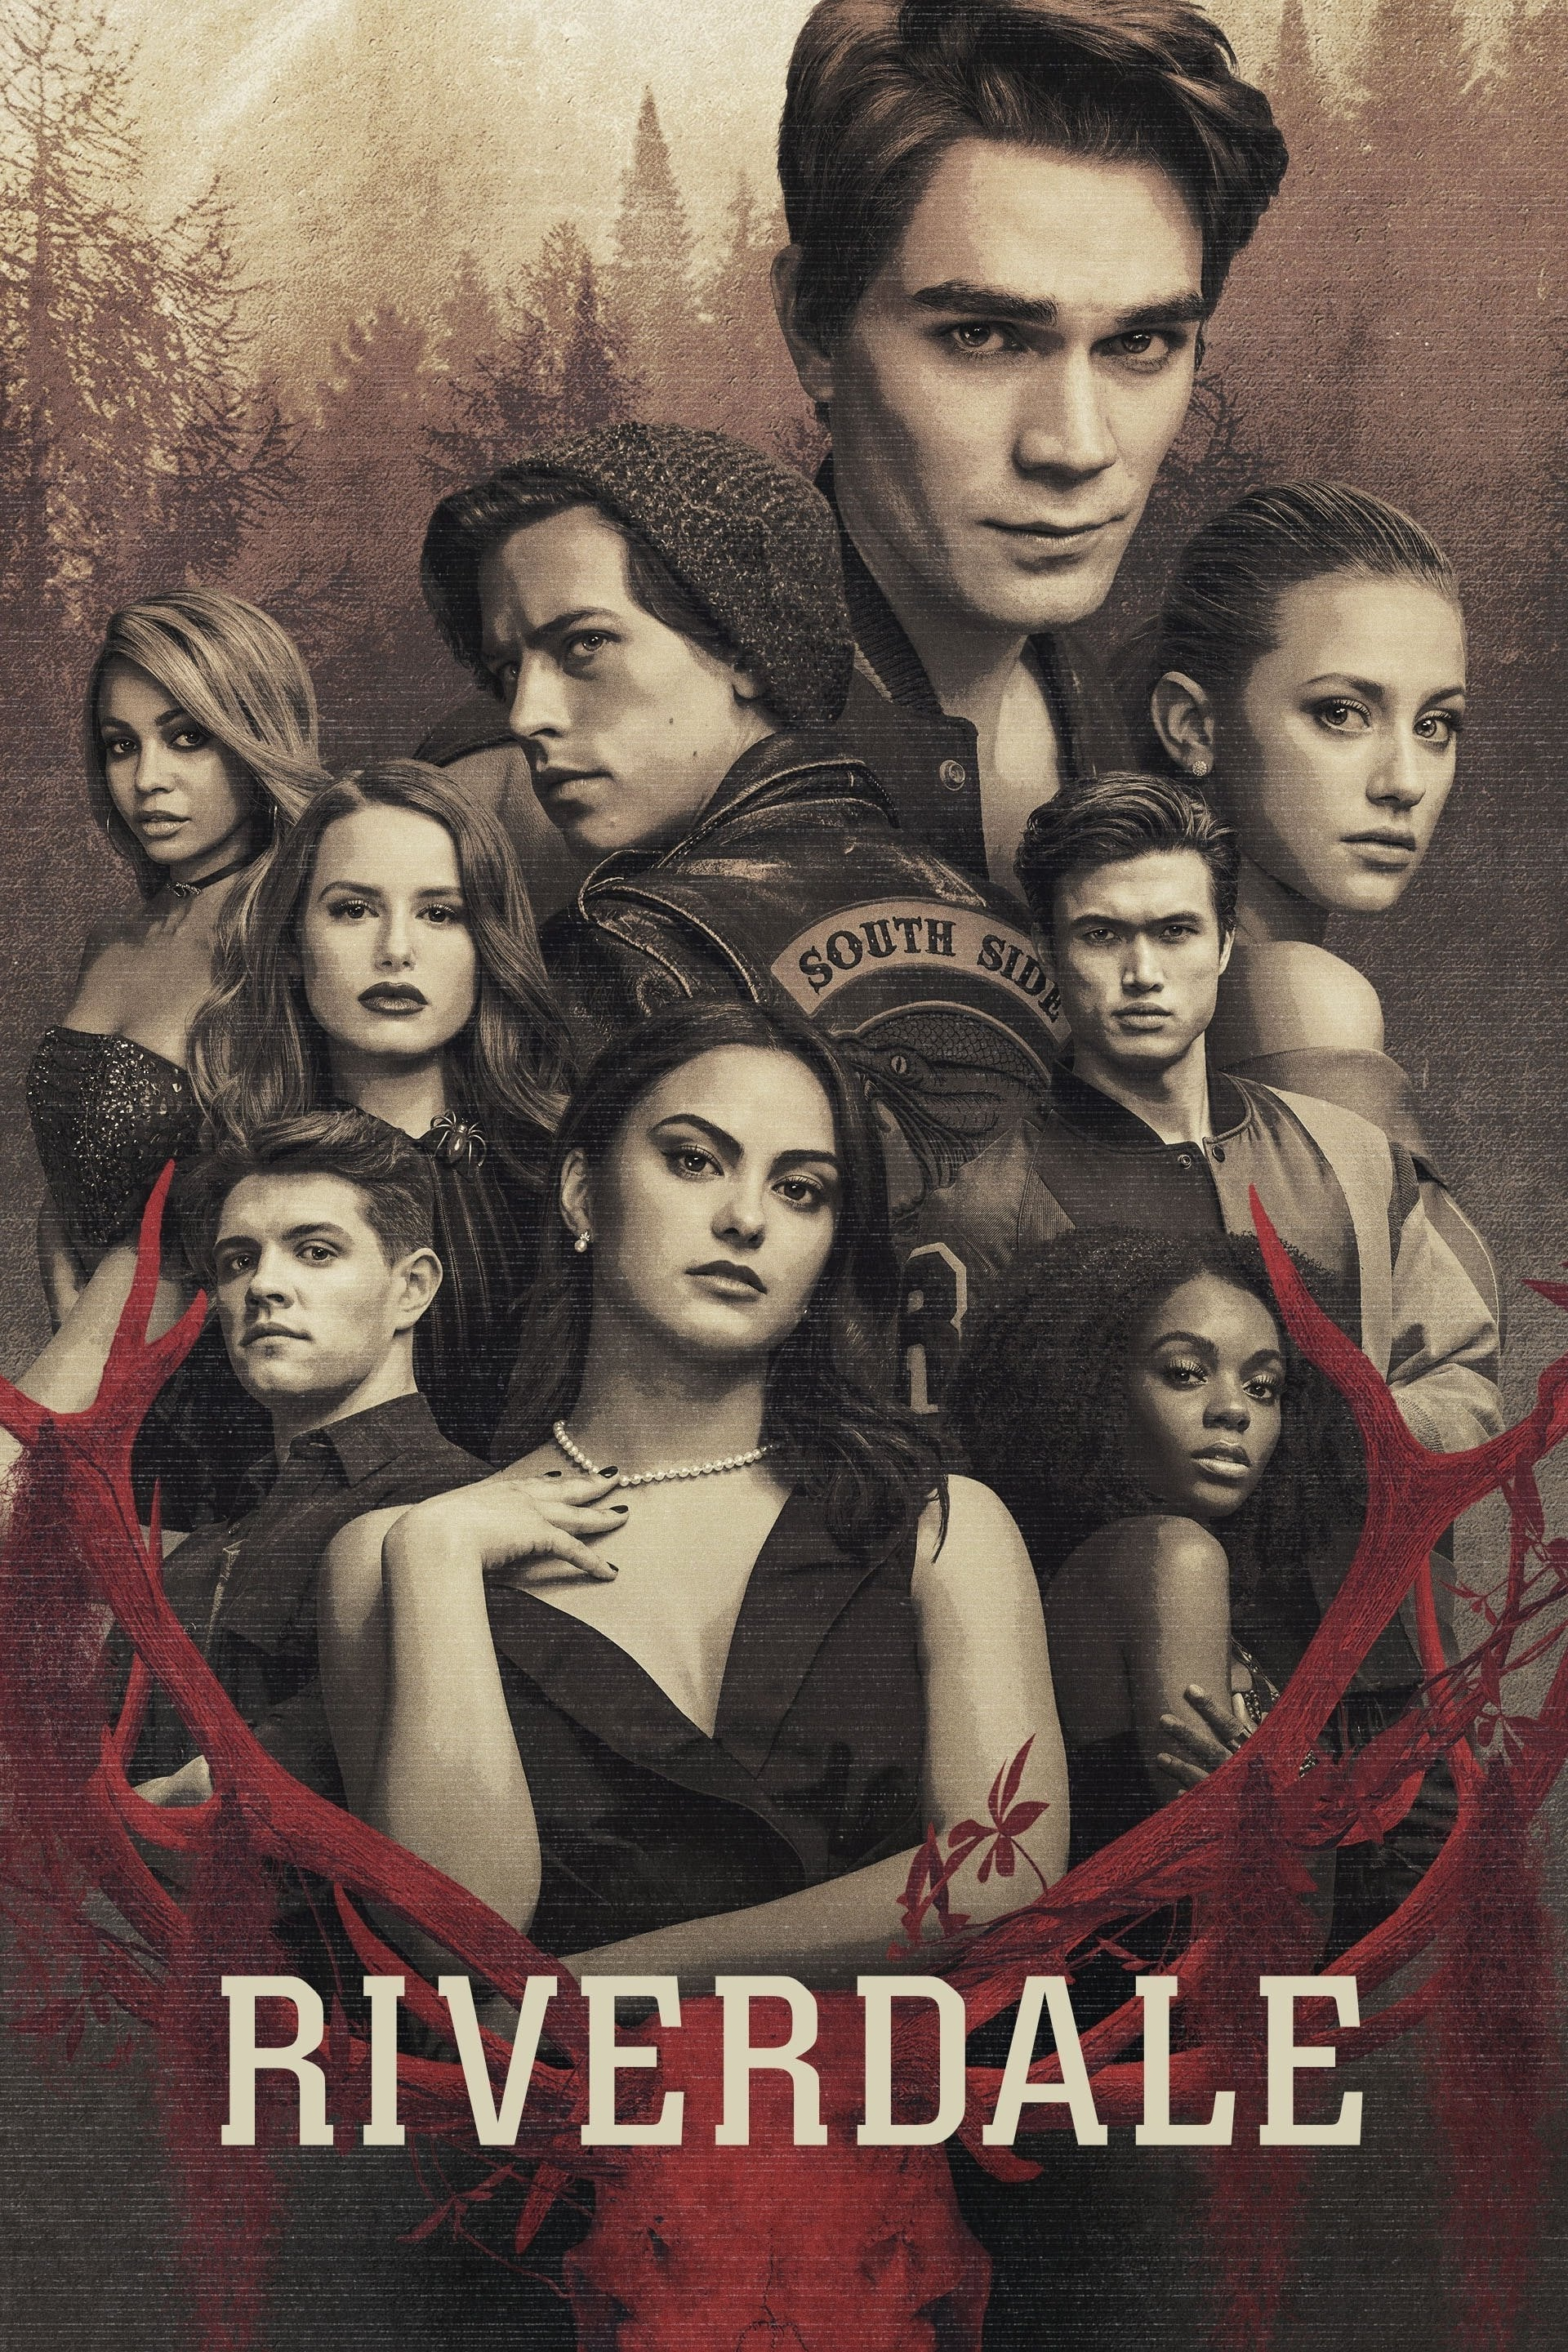 Riverdale (TV Series 2017– ) - IMDb